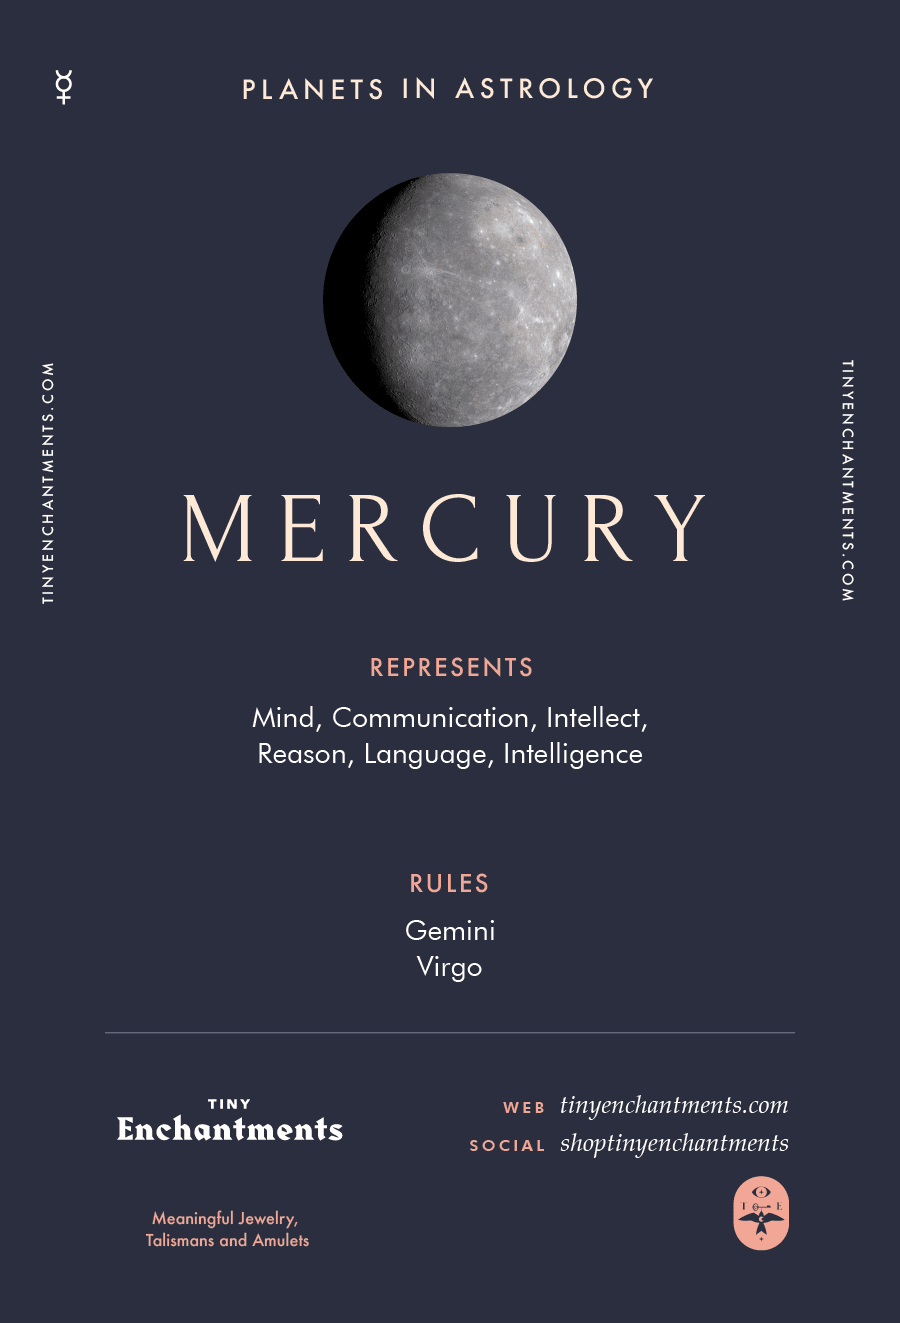 Mercury Sign in Astrology - Planet Meaning, Zodiac, Symbolism, Characteristics Infographic